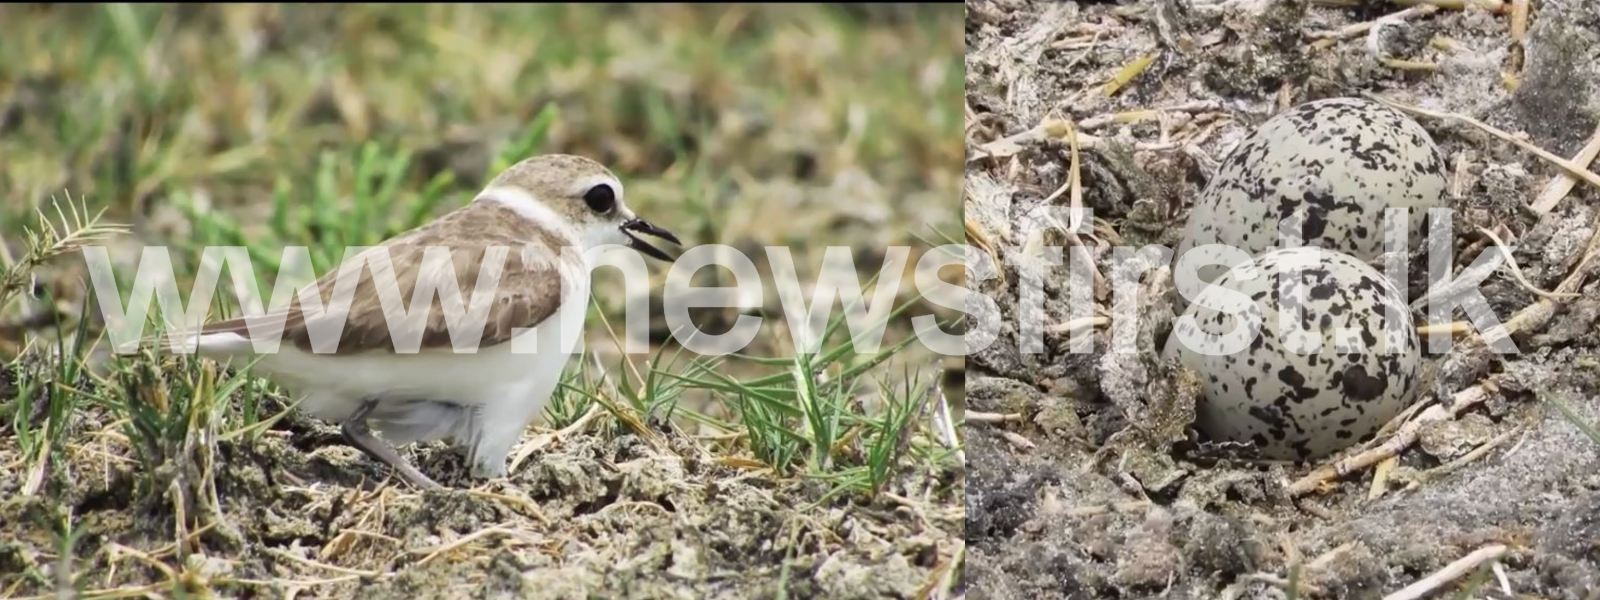 'Hanuman Plover' – New bird species discovered in Sri Lanka